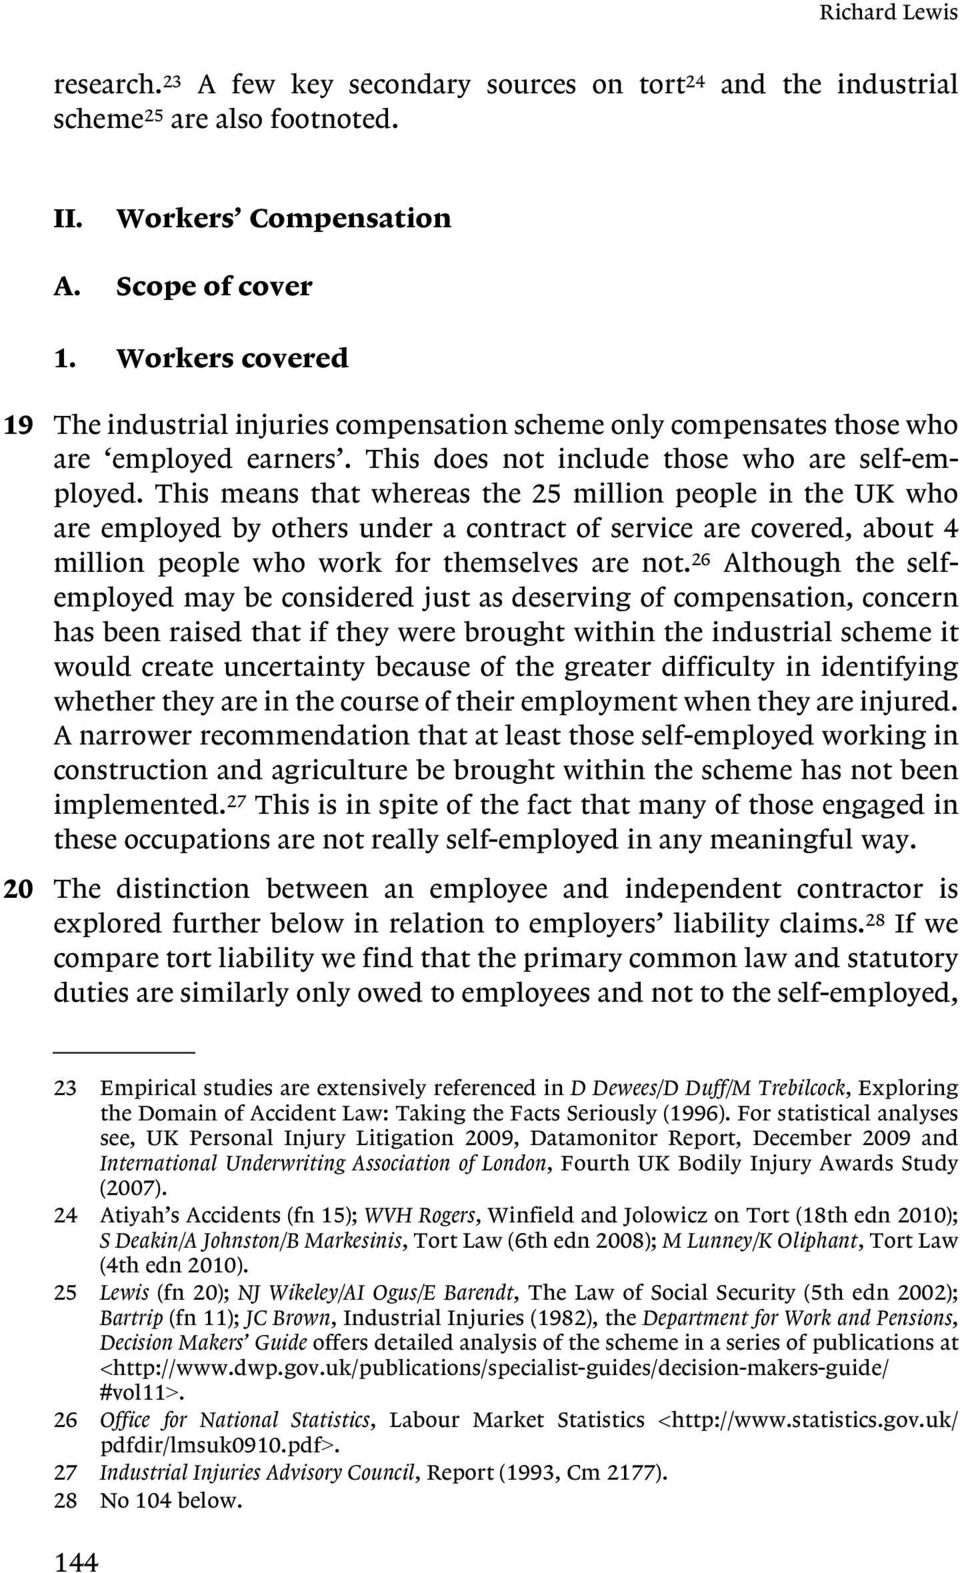 This means that whereas the 25 million people in the UK who are employed by others under a contract of service are covered, about 4 million people who work for themselves are not.